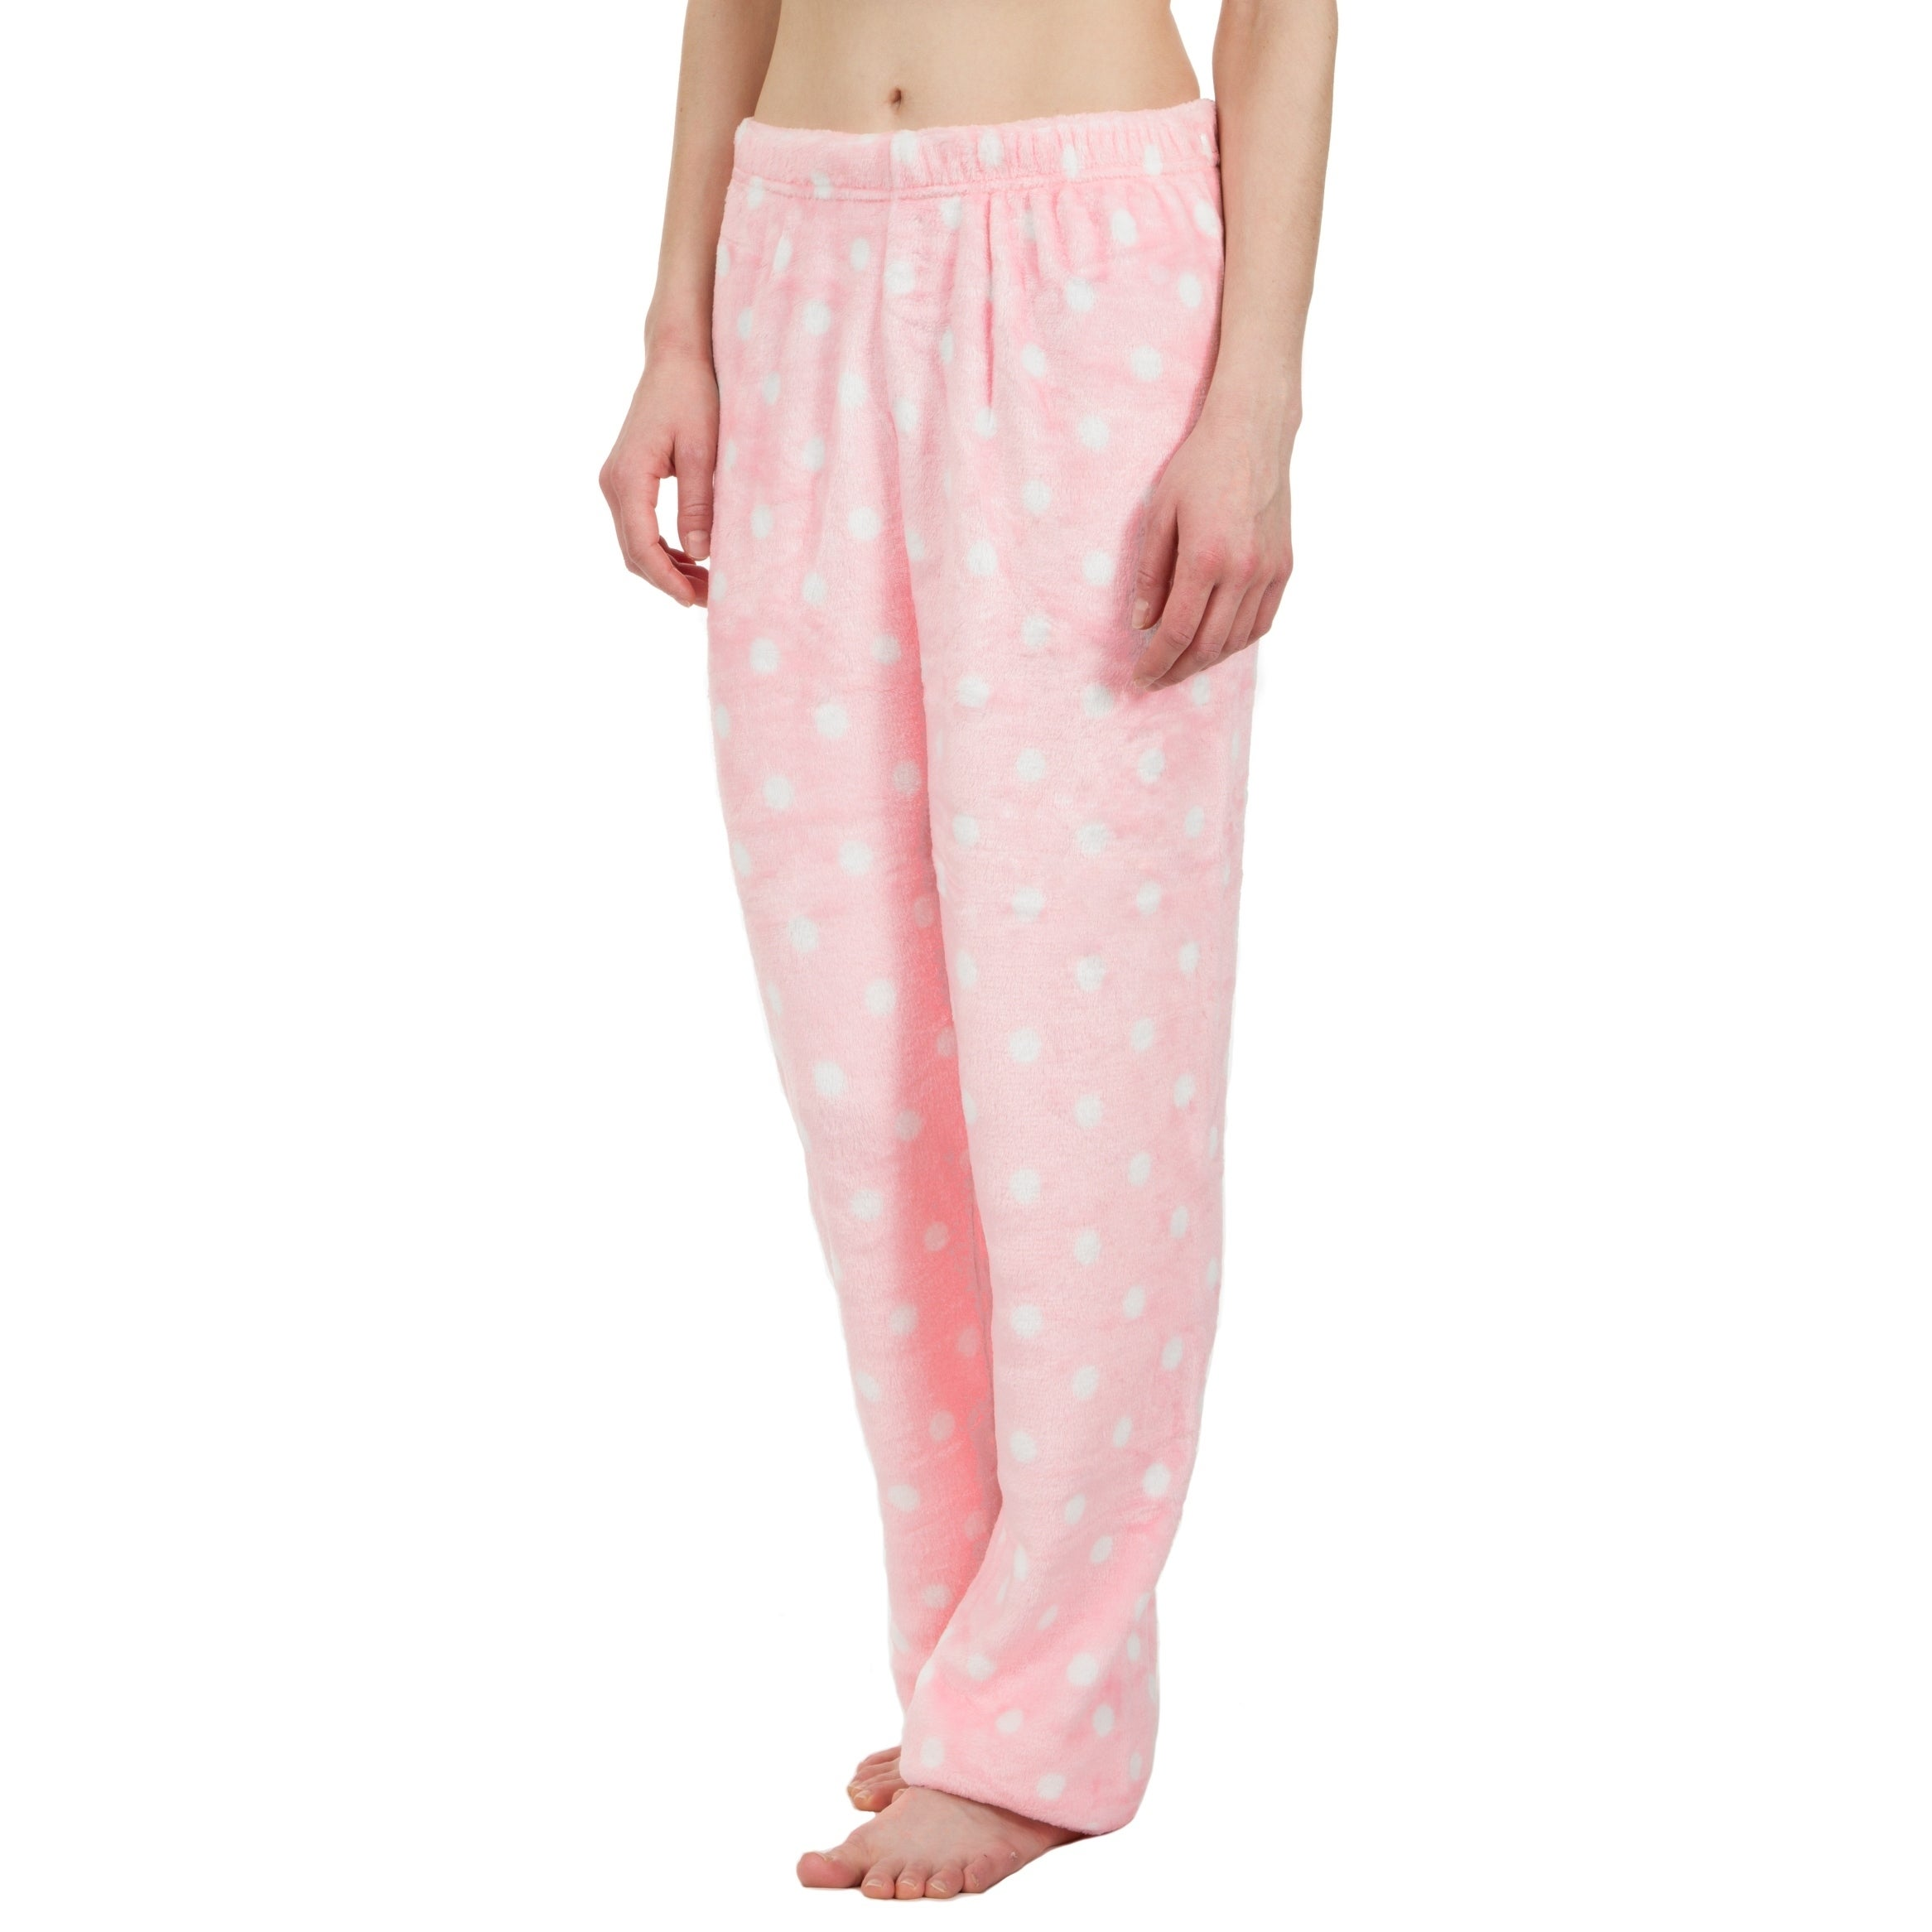 Shop Leisureland Ultra Soft Plush Fleece Pajama Pants Polka Dot